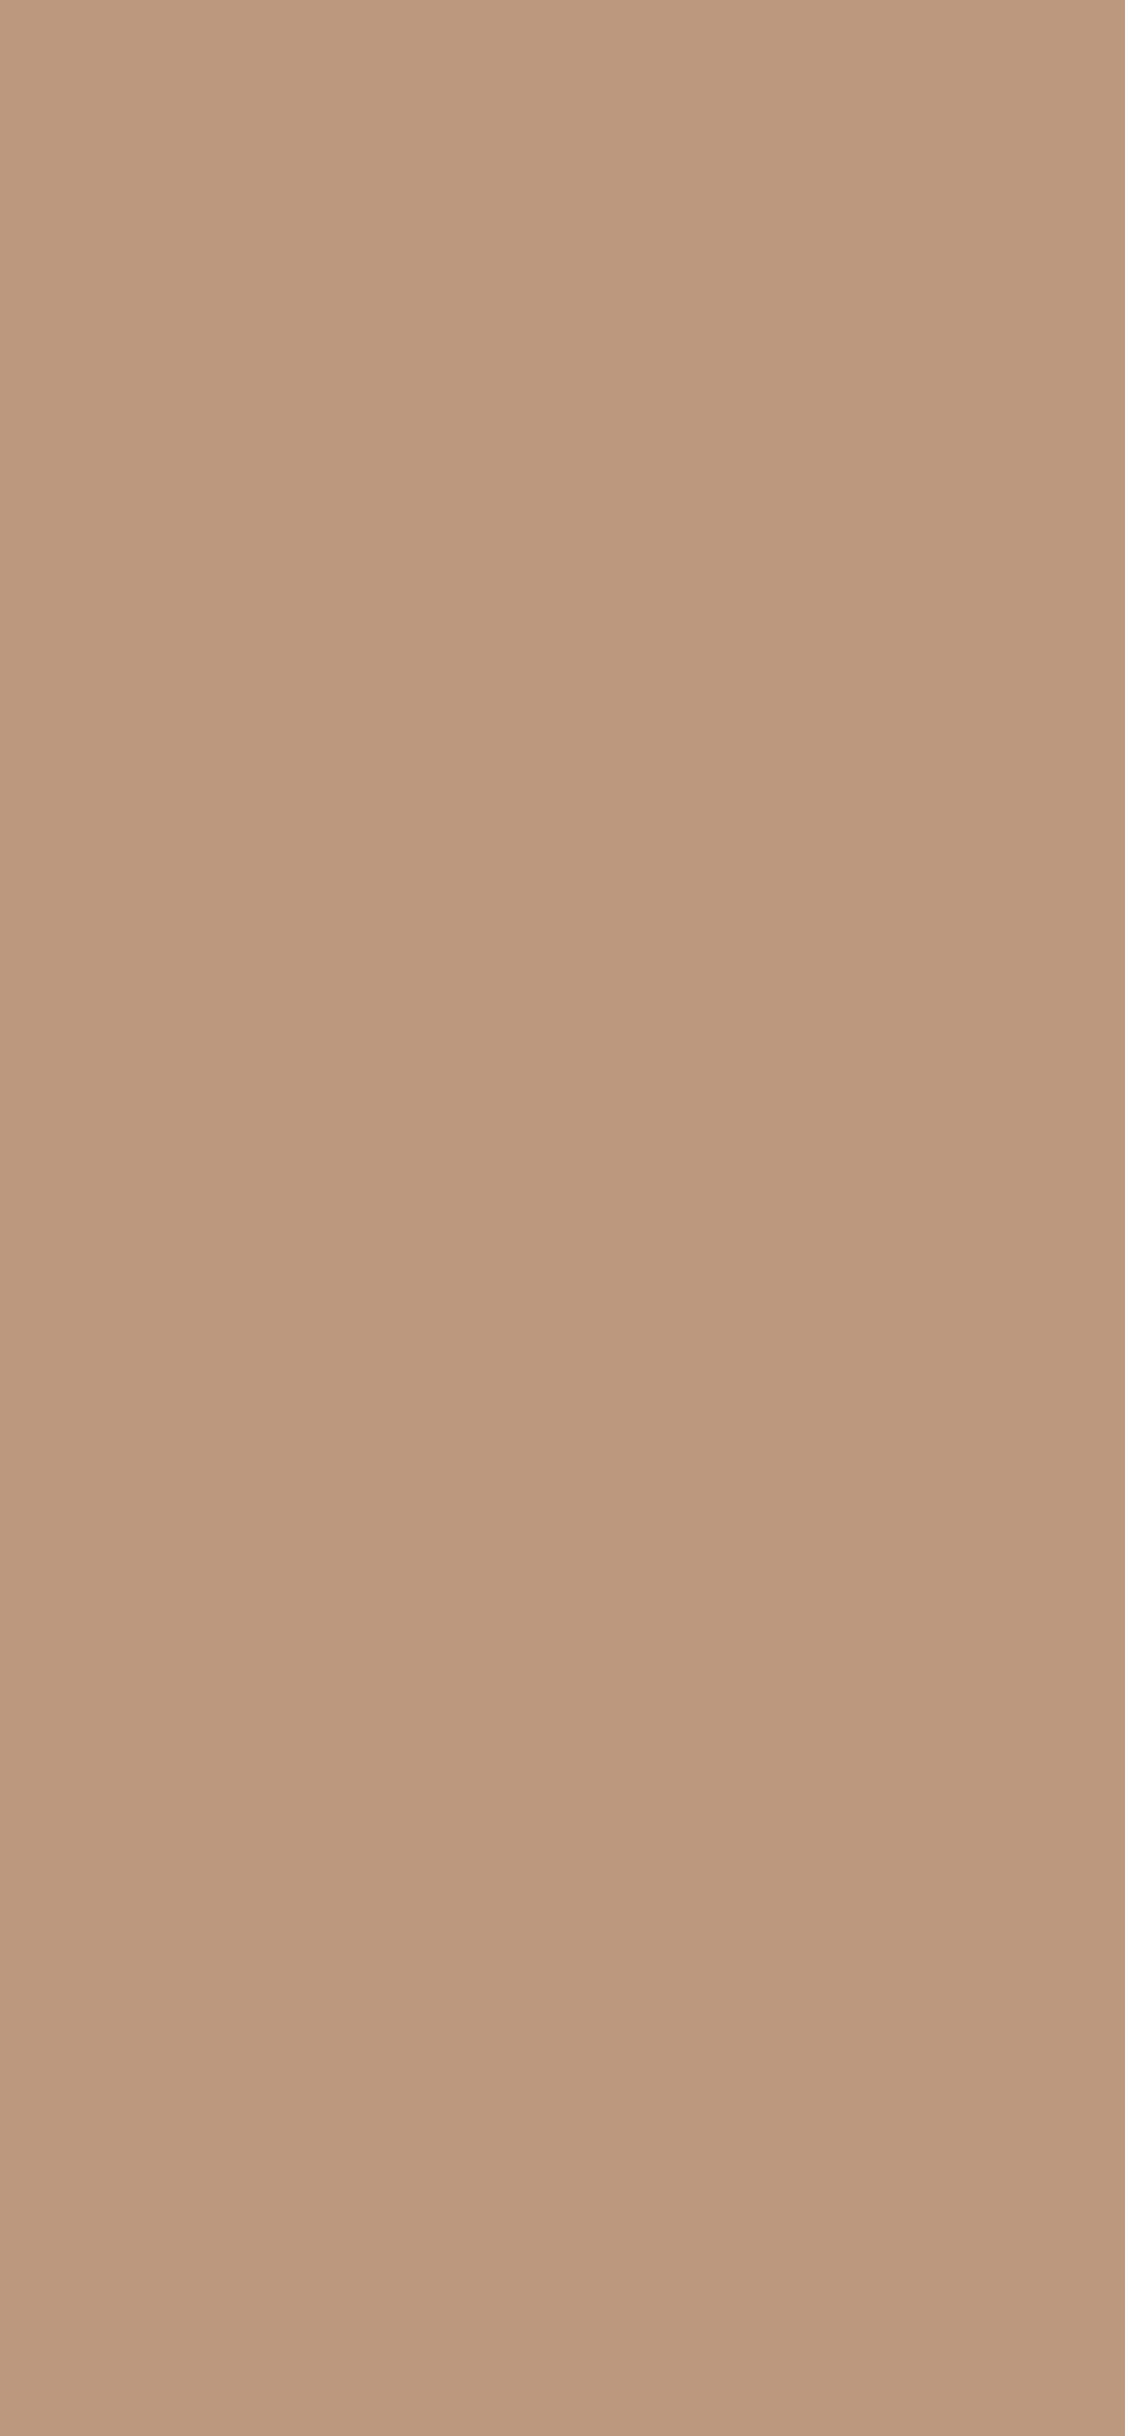 1125x2436 Pale Taupe Solid Color Background